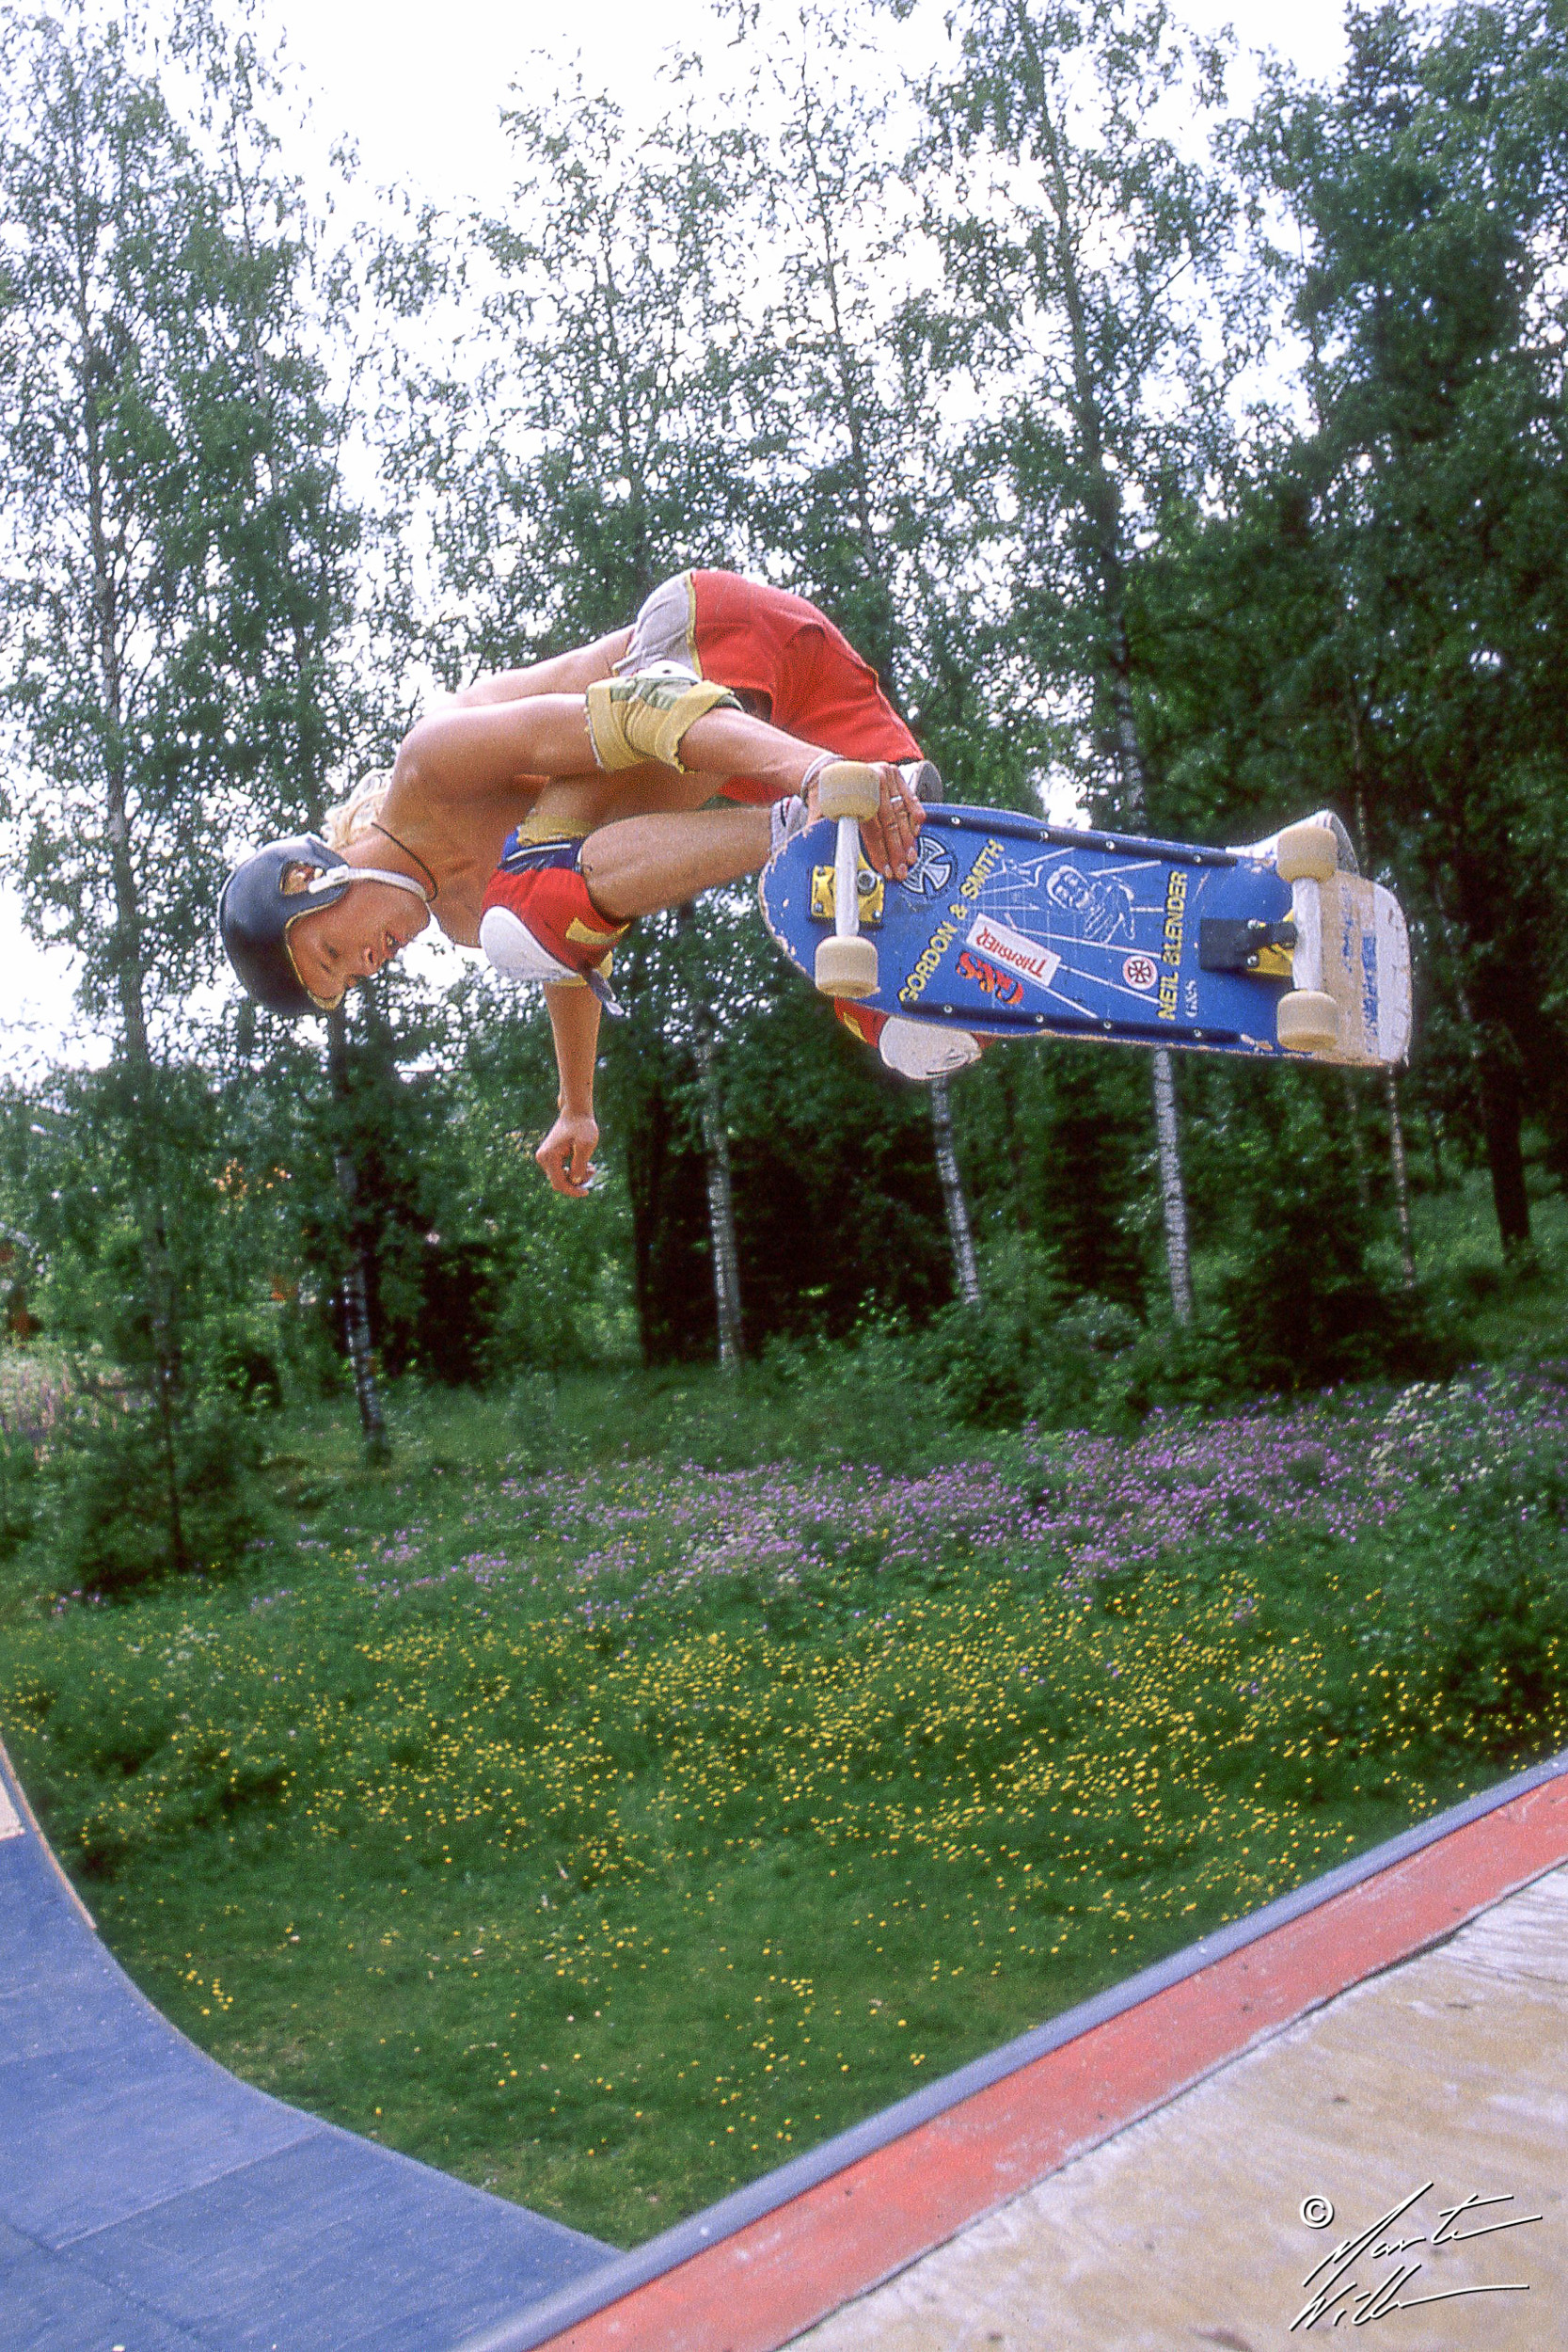 Tony Jansson, Backside air, Karlskoga, 1984